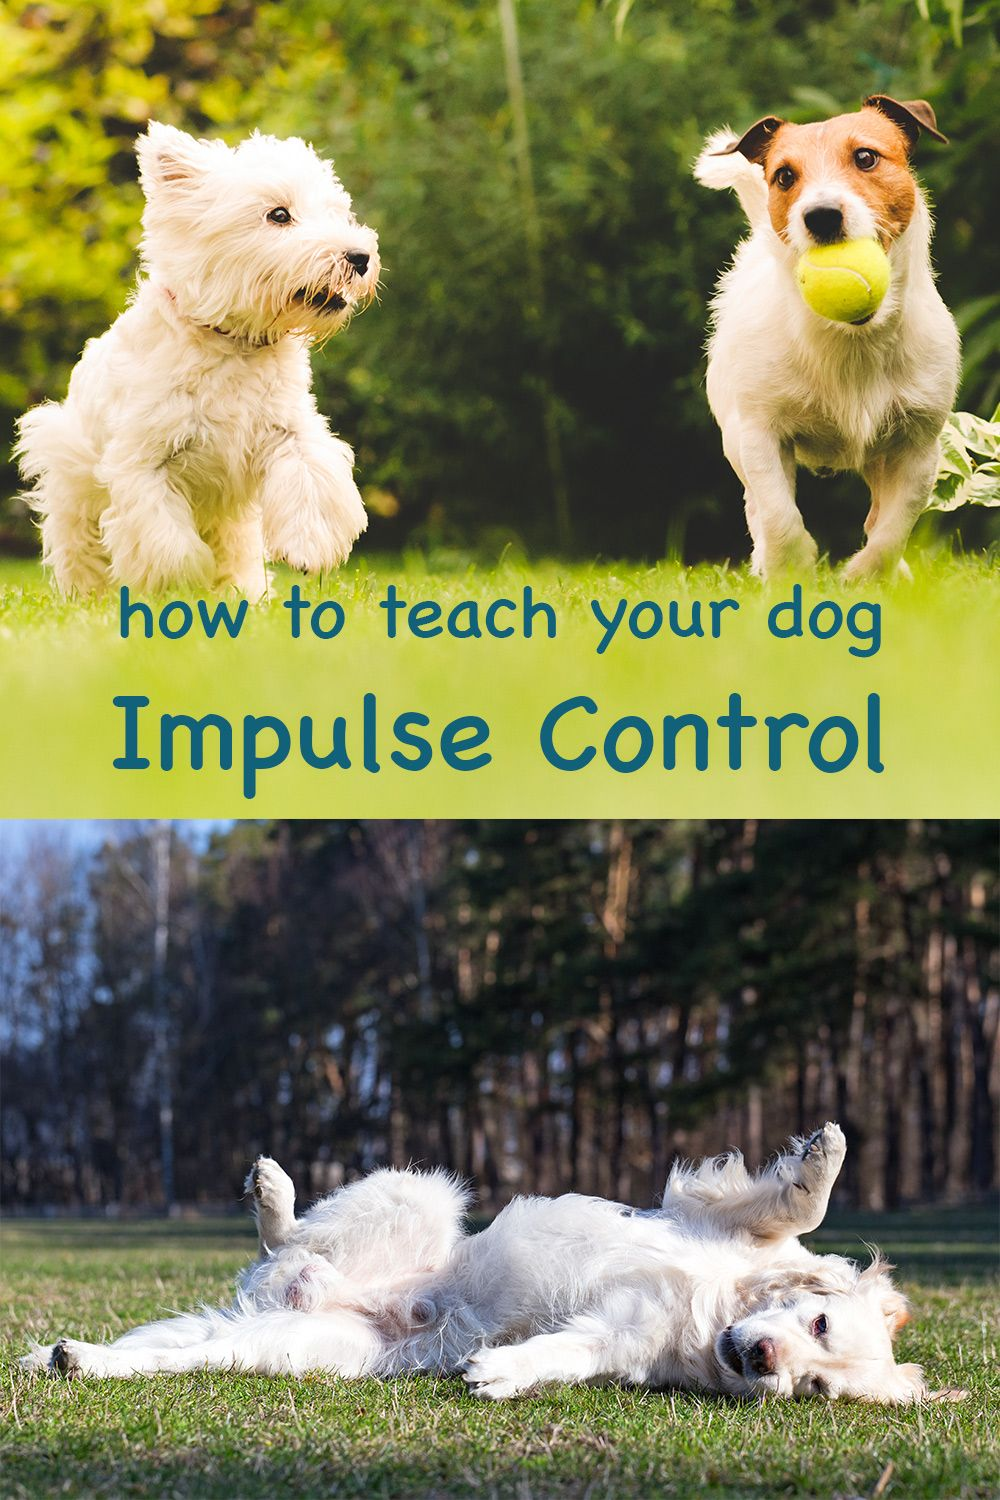 Teach Your Dog Impulse Control Exercises To Help With Self